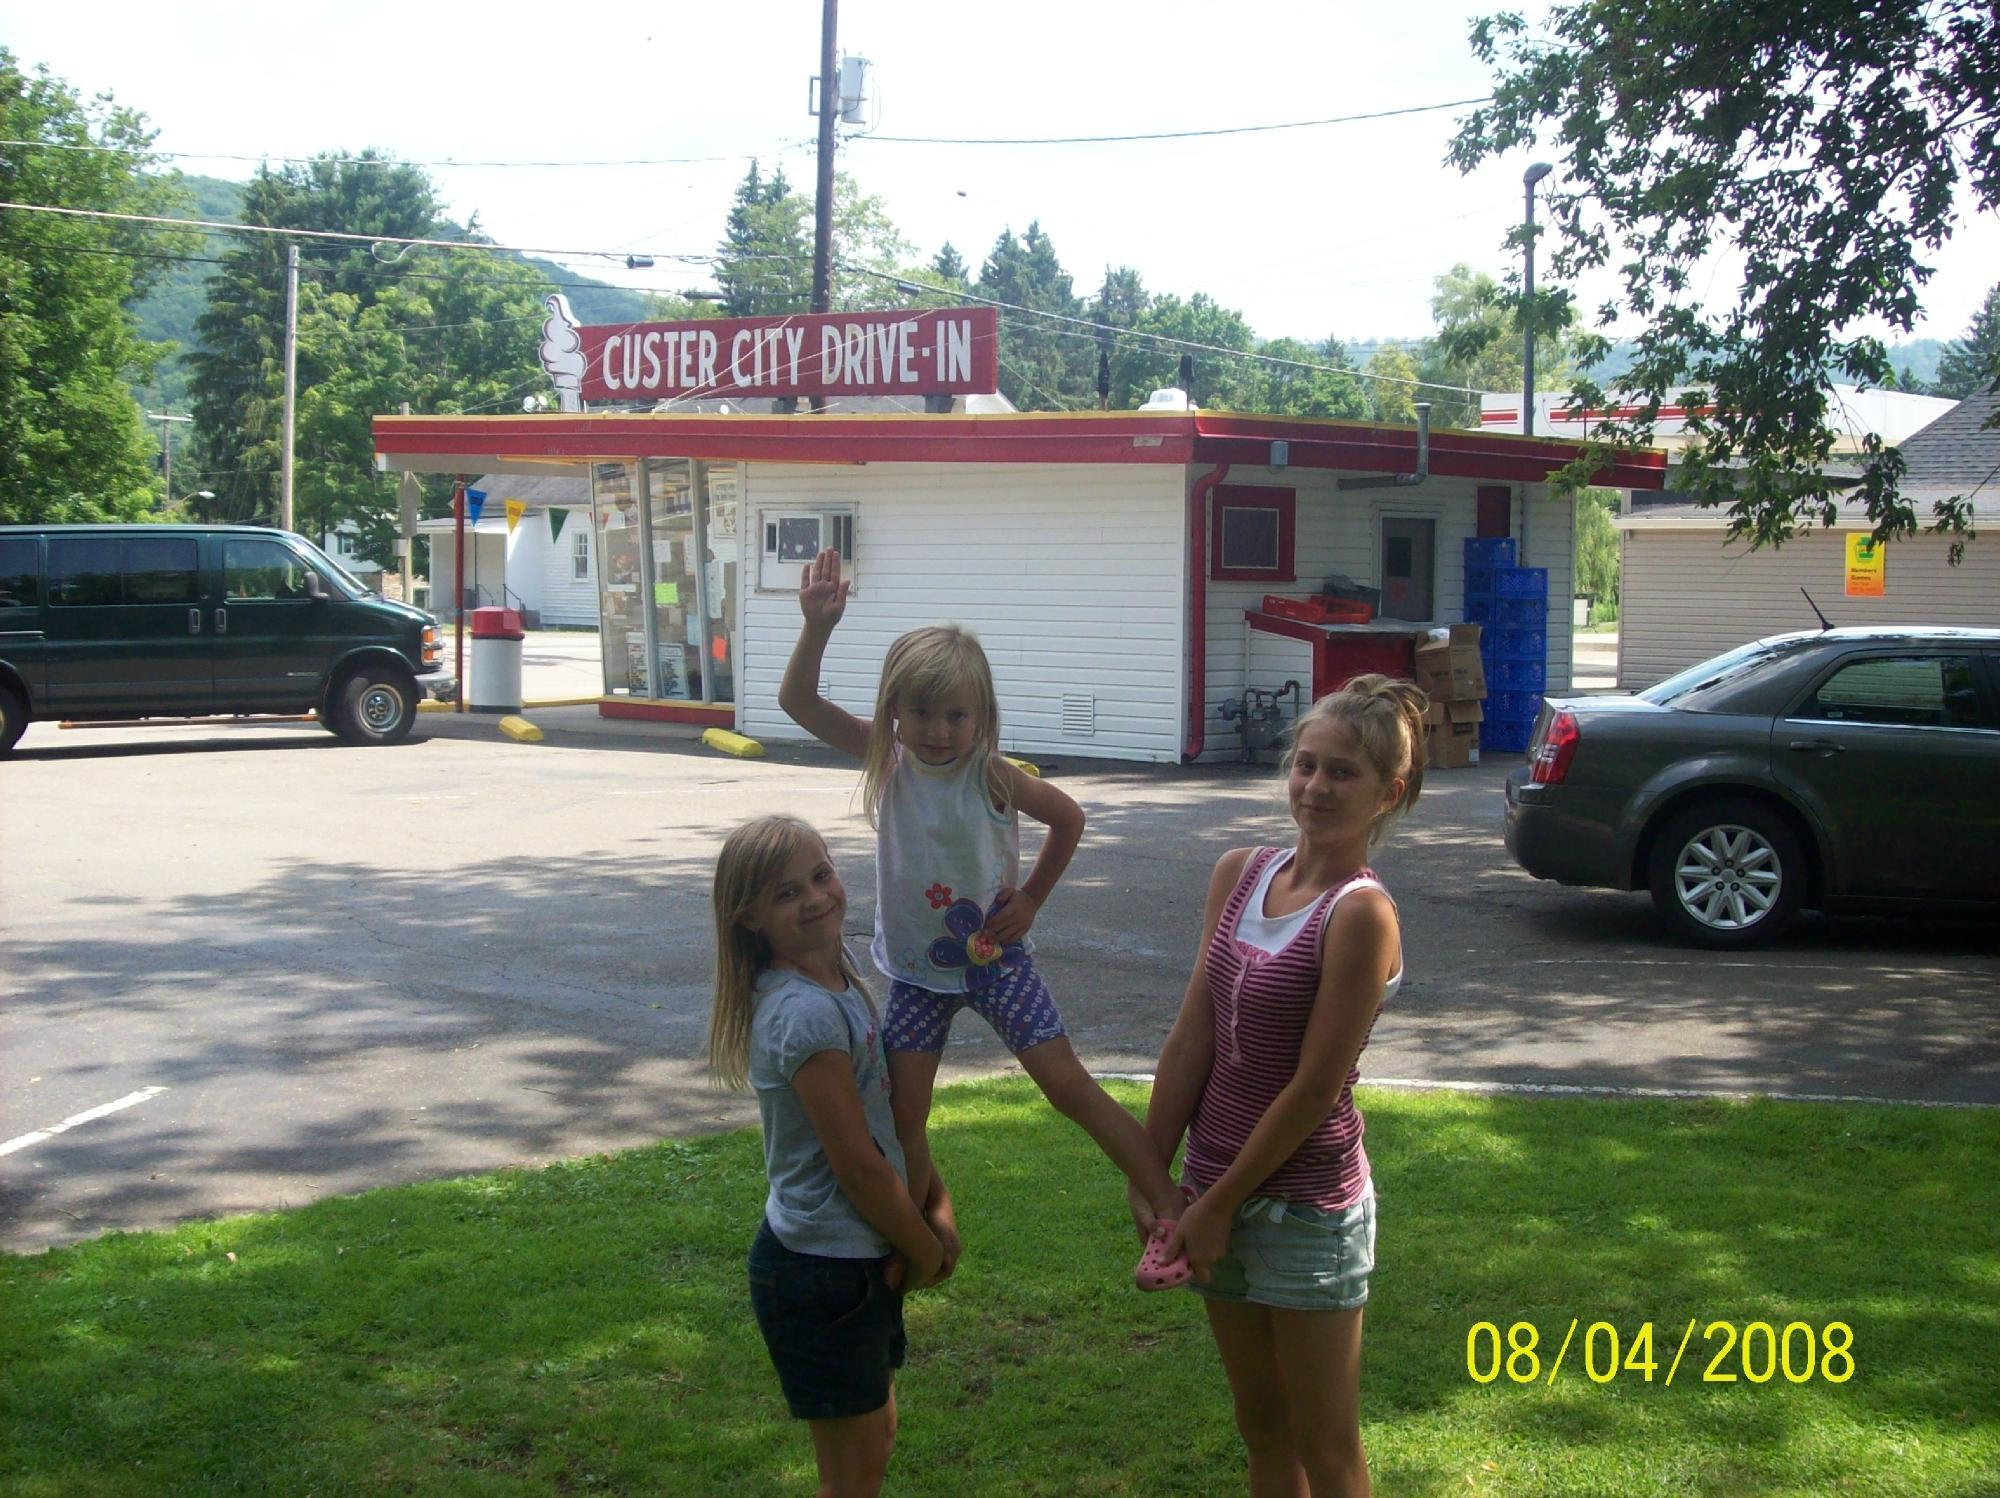 Custer City Drive-In